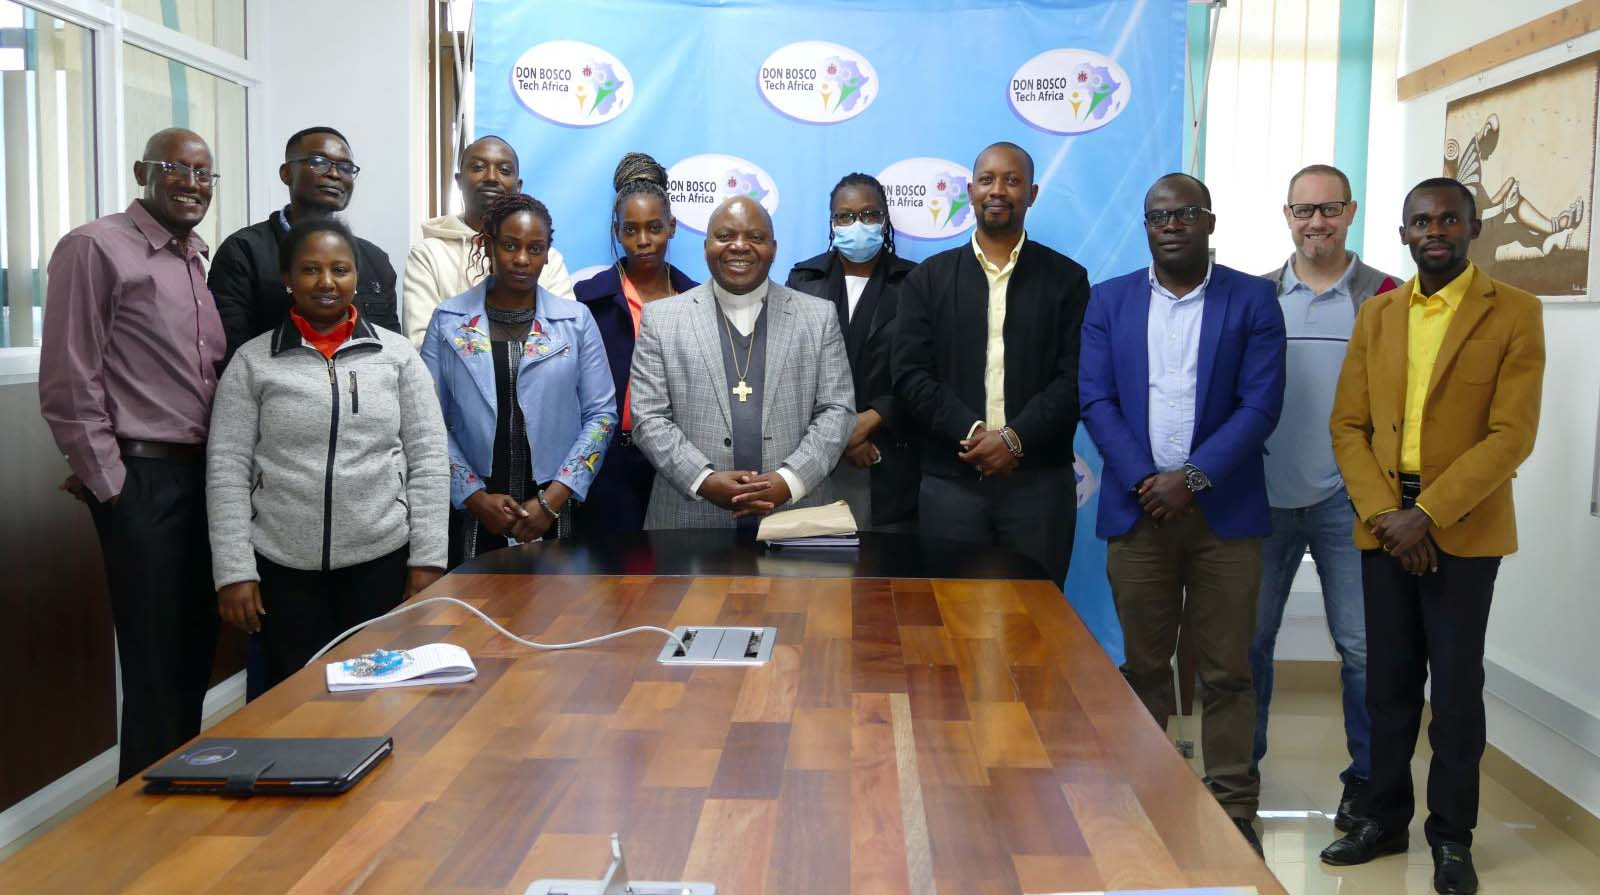 The Provincial Superior For The Salesian Province Of Eastern Africa (AFE) Meets With DBTech Africa Team